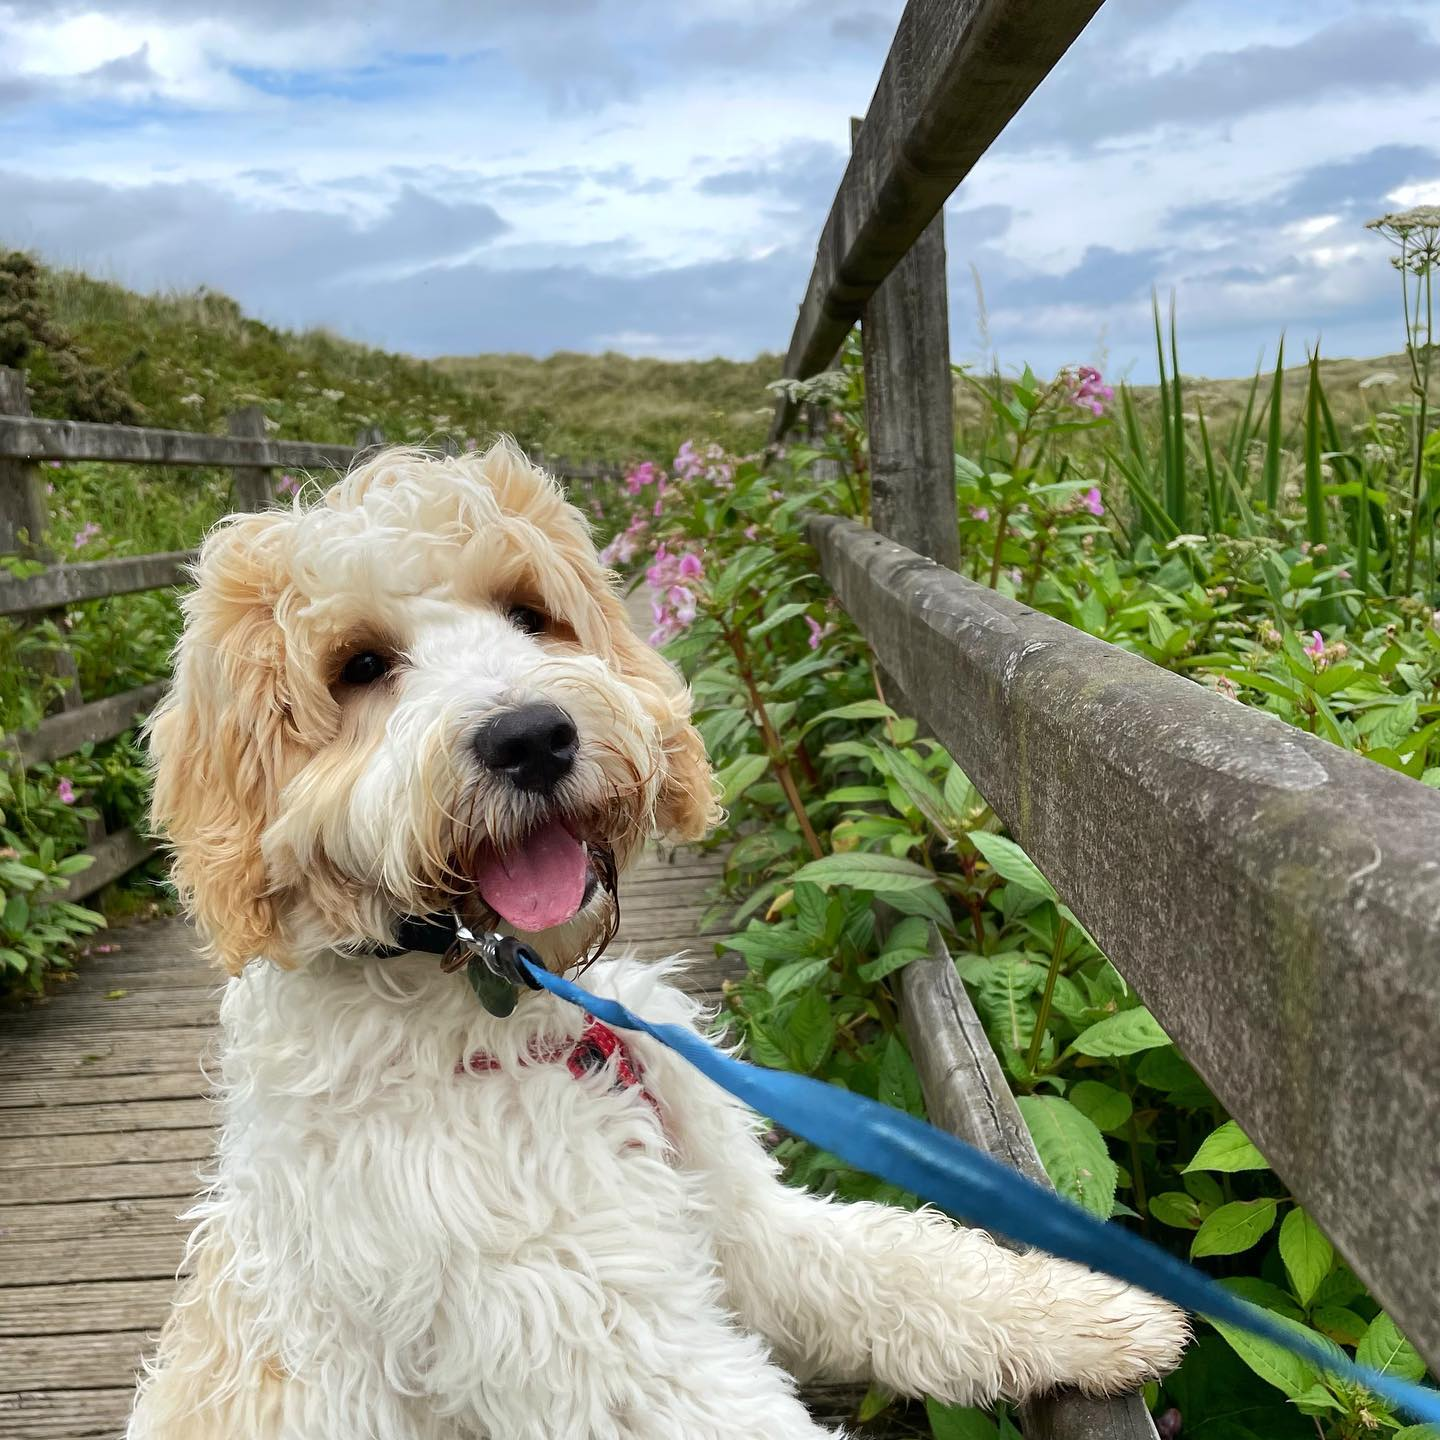 The last week has been spent on the north coast, with lots and lots puppy walks. When I dreamed of getting a puppy this was exactly what I was looking forward to - coastal walks, taking photos, meeting lots of other dogs and their owners …. having lots of chats about breeds, size and fluffy fur coats!